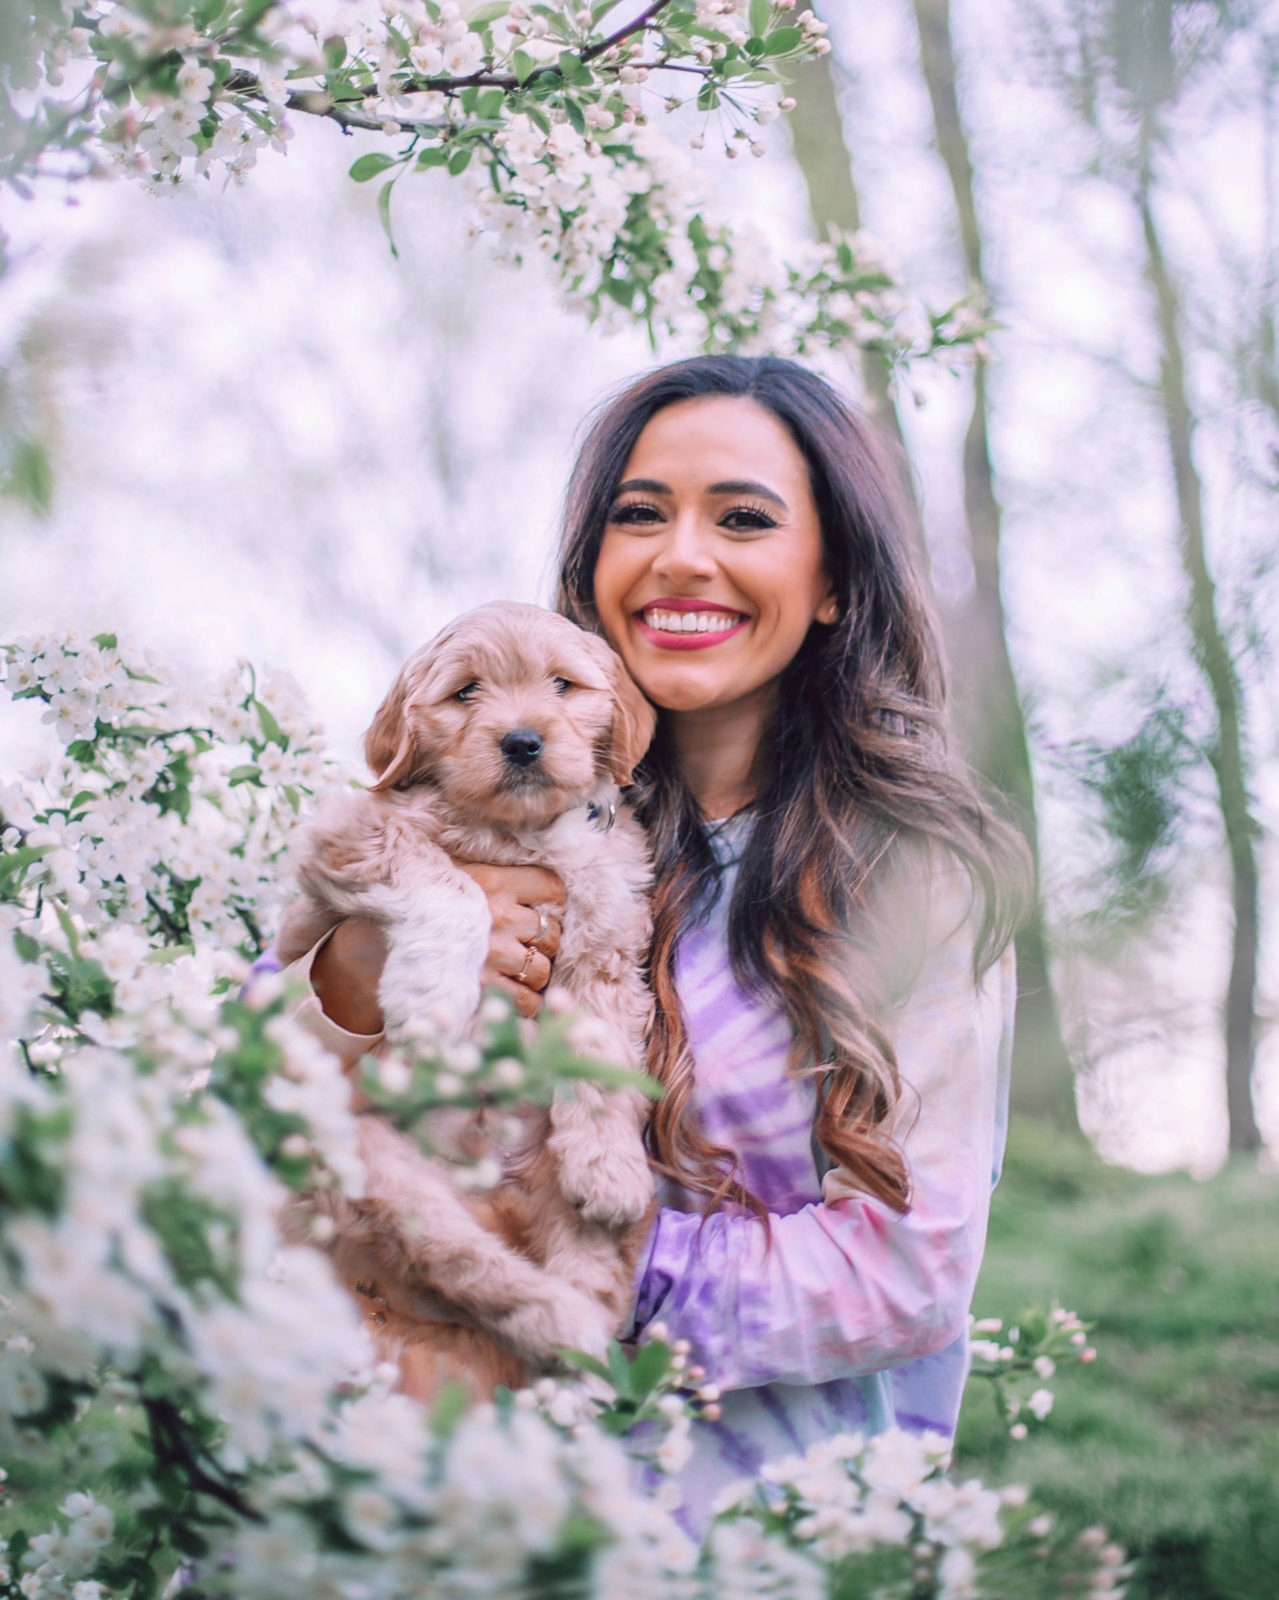 jasmine elias boswell and moose boswell, adorable golden doodle puppy, new york city central park  tips on how to prepare for a new dog